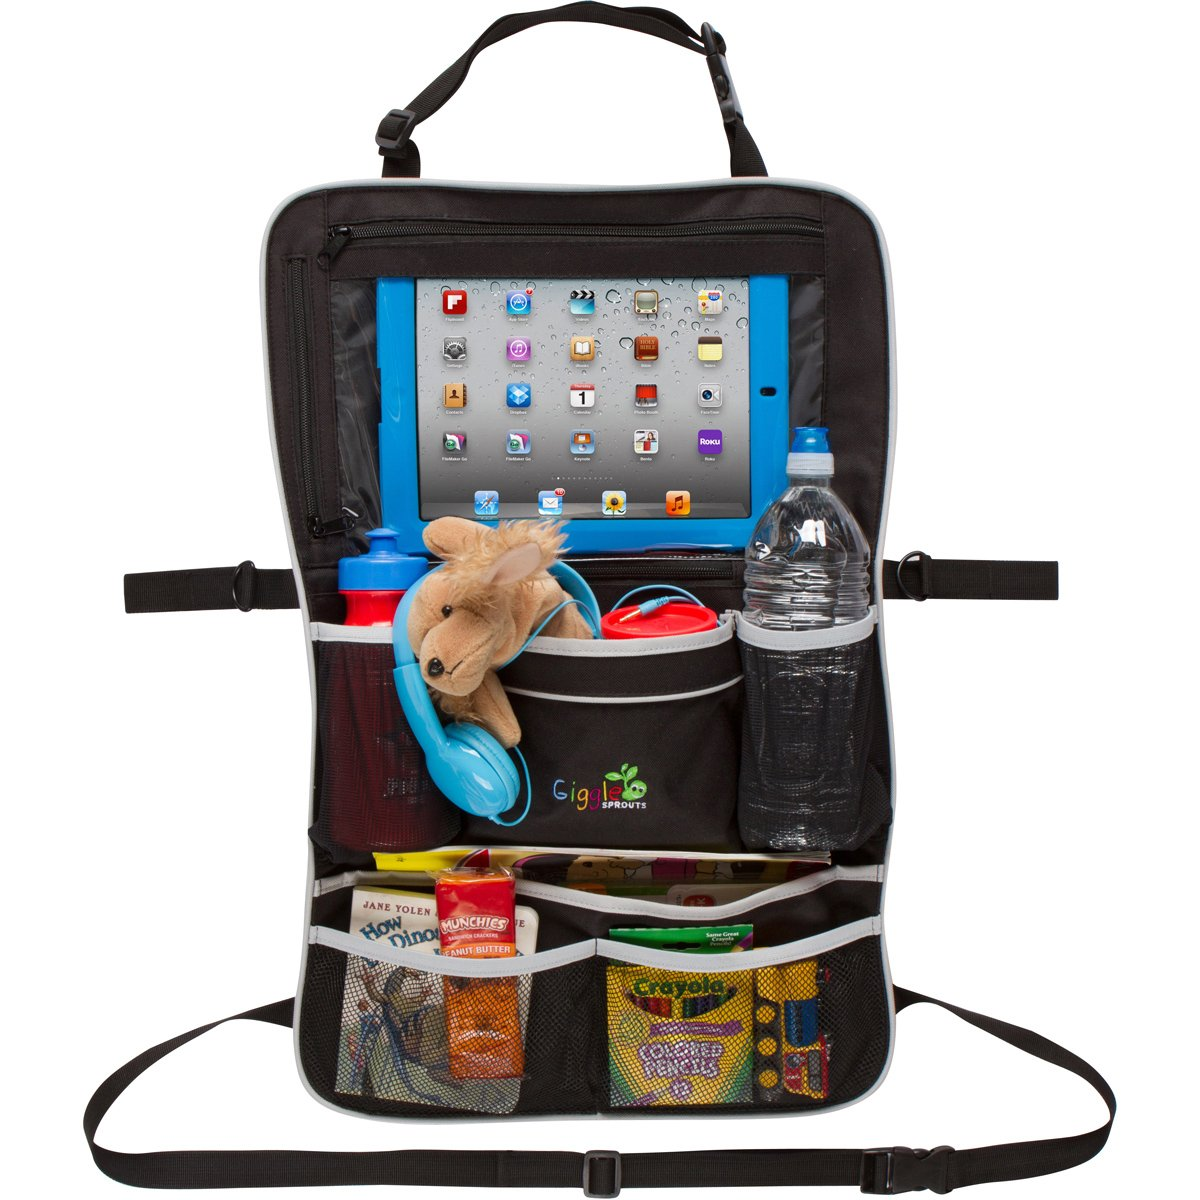 Amazon.com: Giggle Sprouts Universal Backseat Car Organizer: Baby